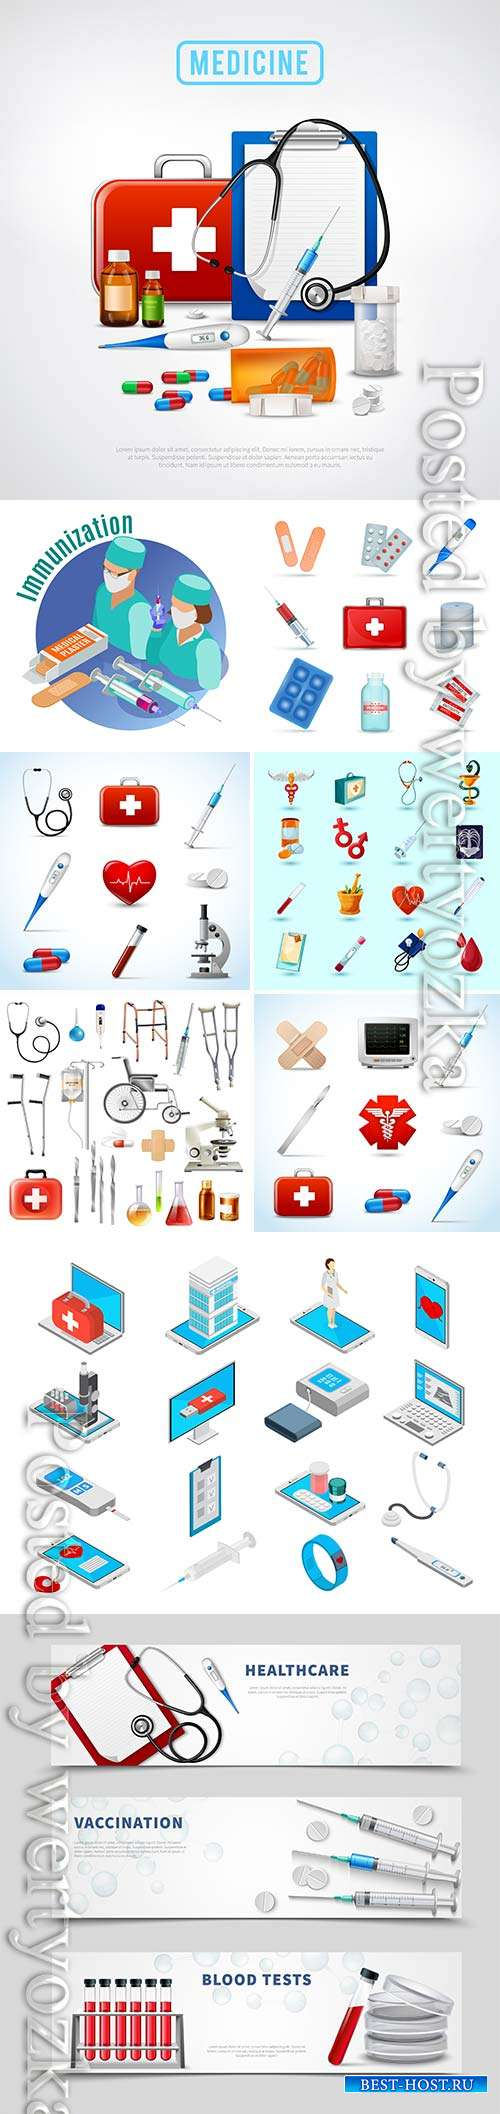 Medicine isometric concept with medical equipment symbols vector illustrati ...